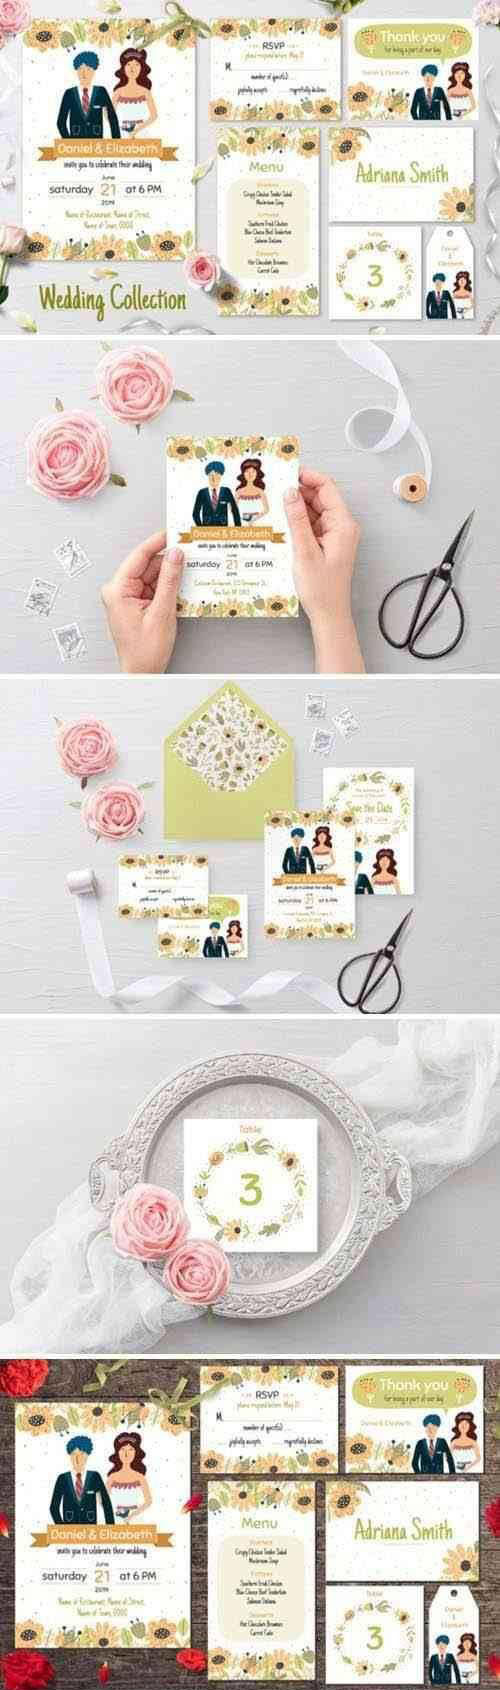 Bride and Groom Invitation Pack - 3975840